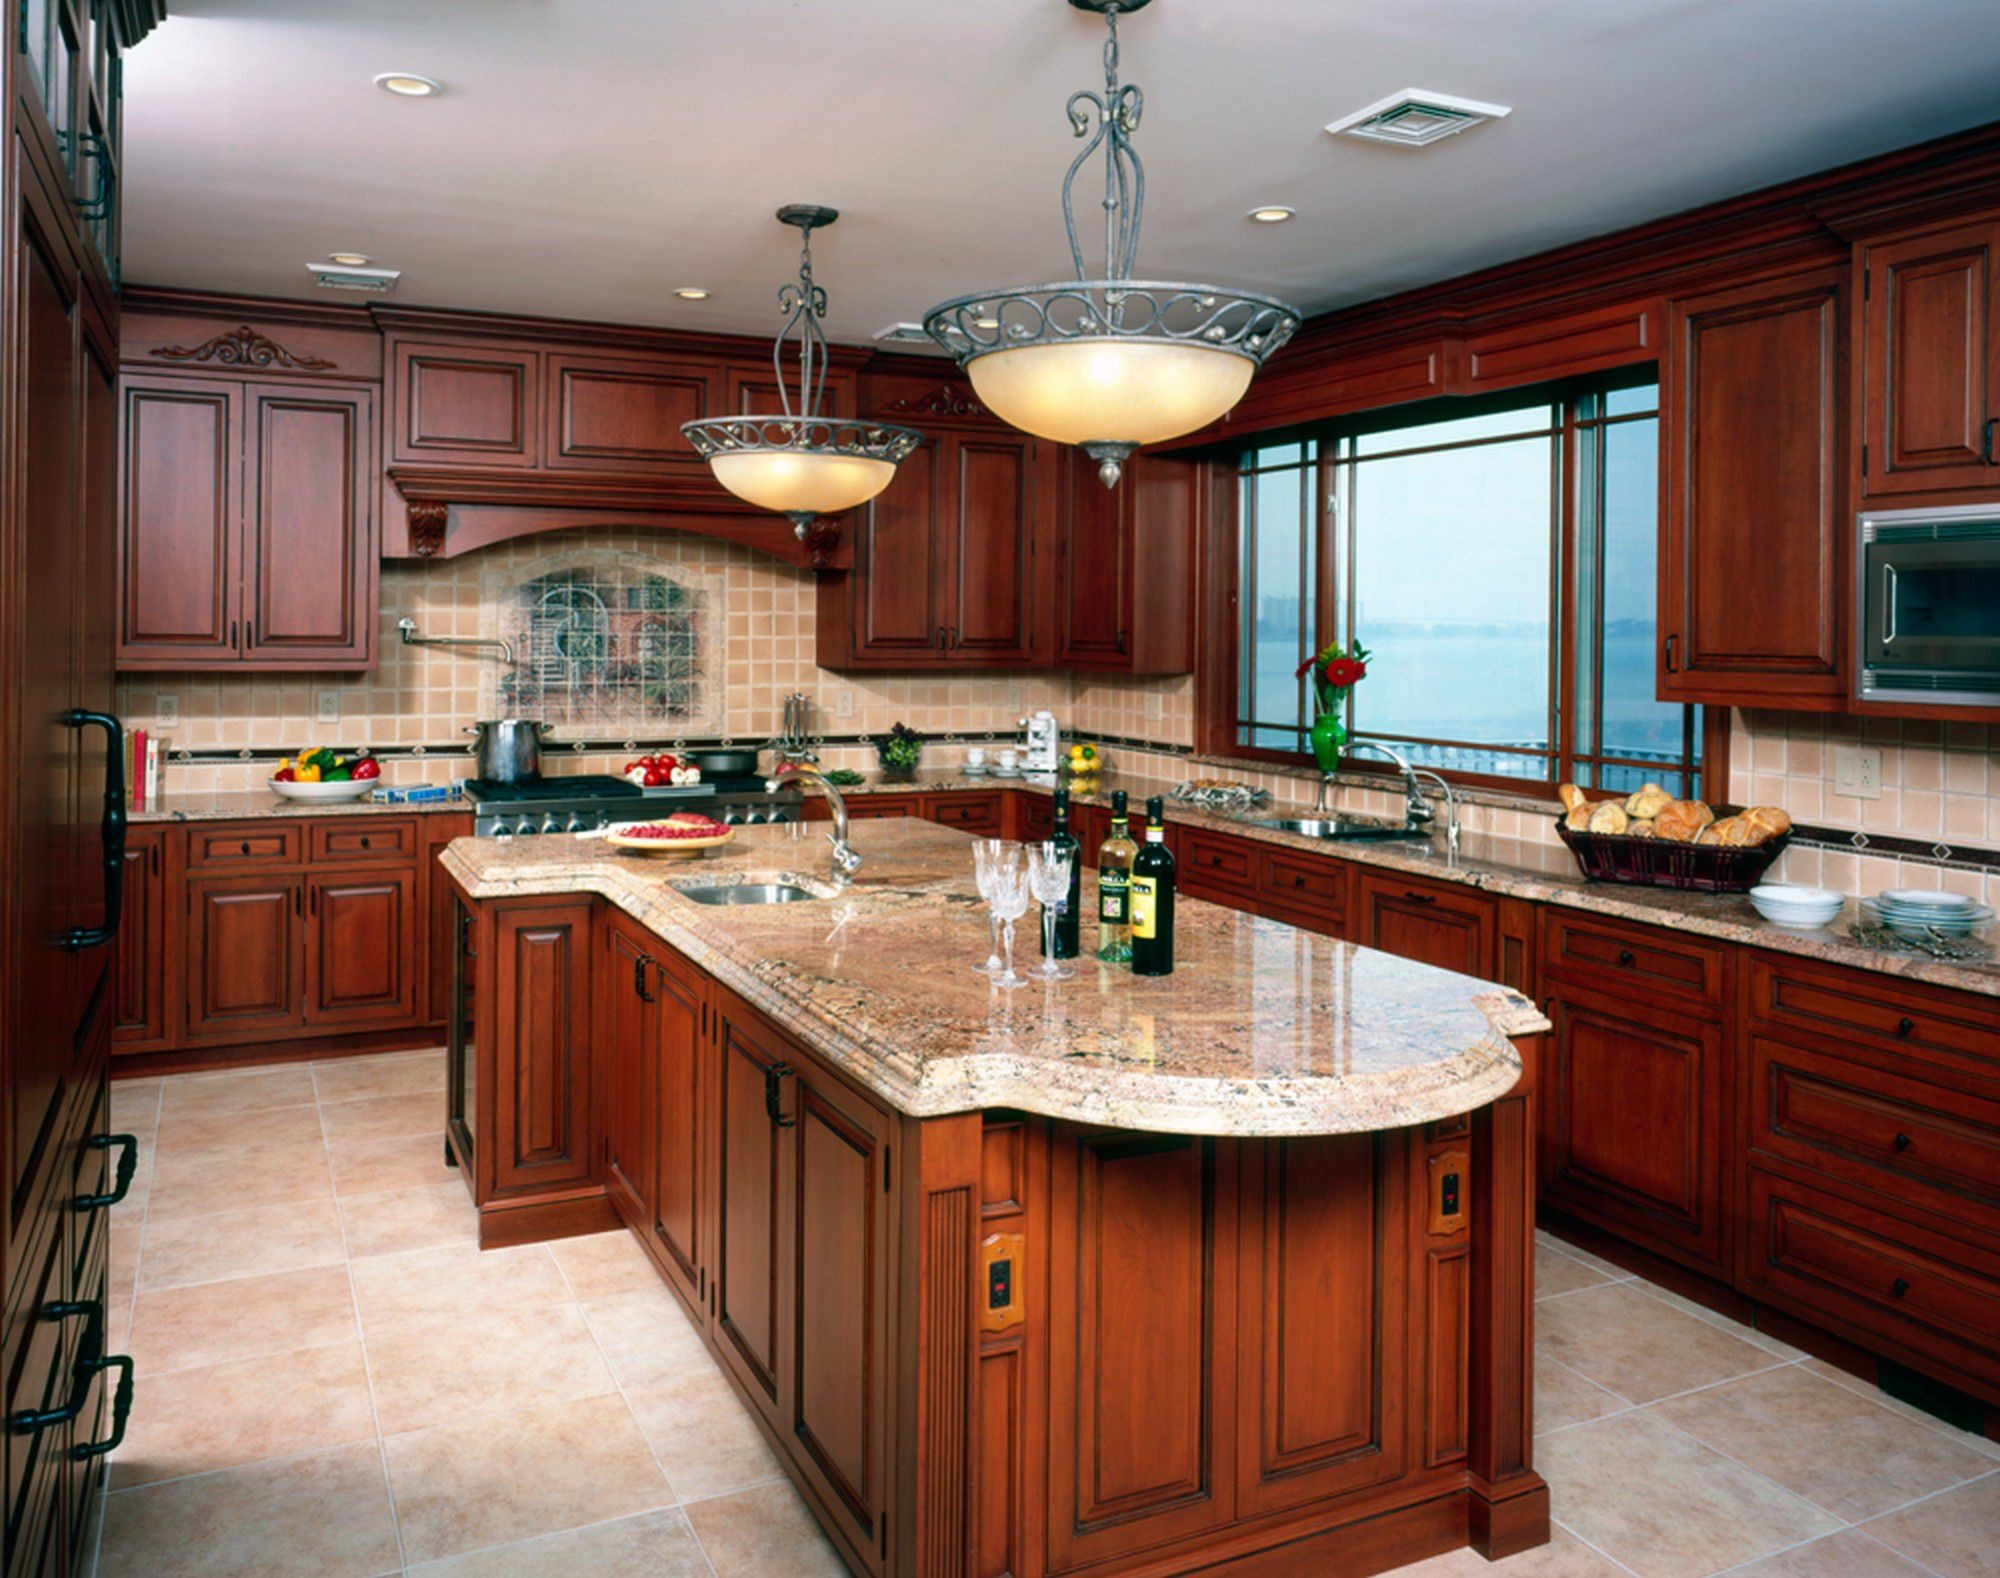 countertop colors that go with cherry cabinets  White Spring Granite for Your Fancy House - Traba Homes - countertop colors that go with cherry cabinets